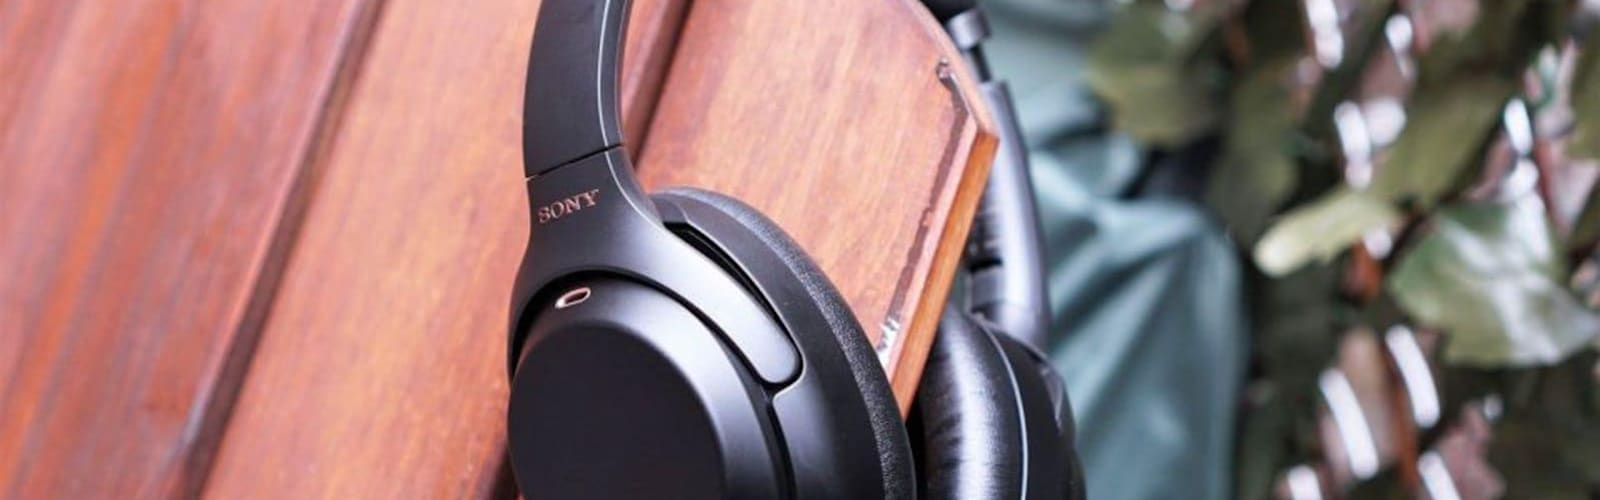 This week's best deals: Sony headphones, Surface Pro 7 and more